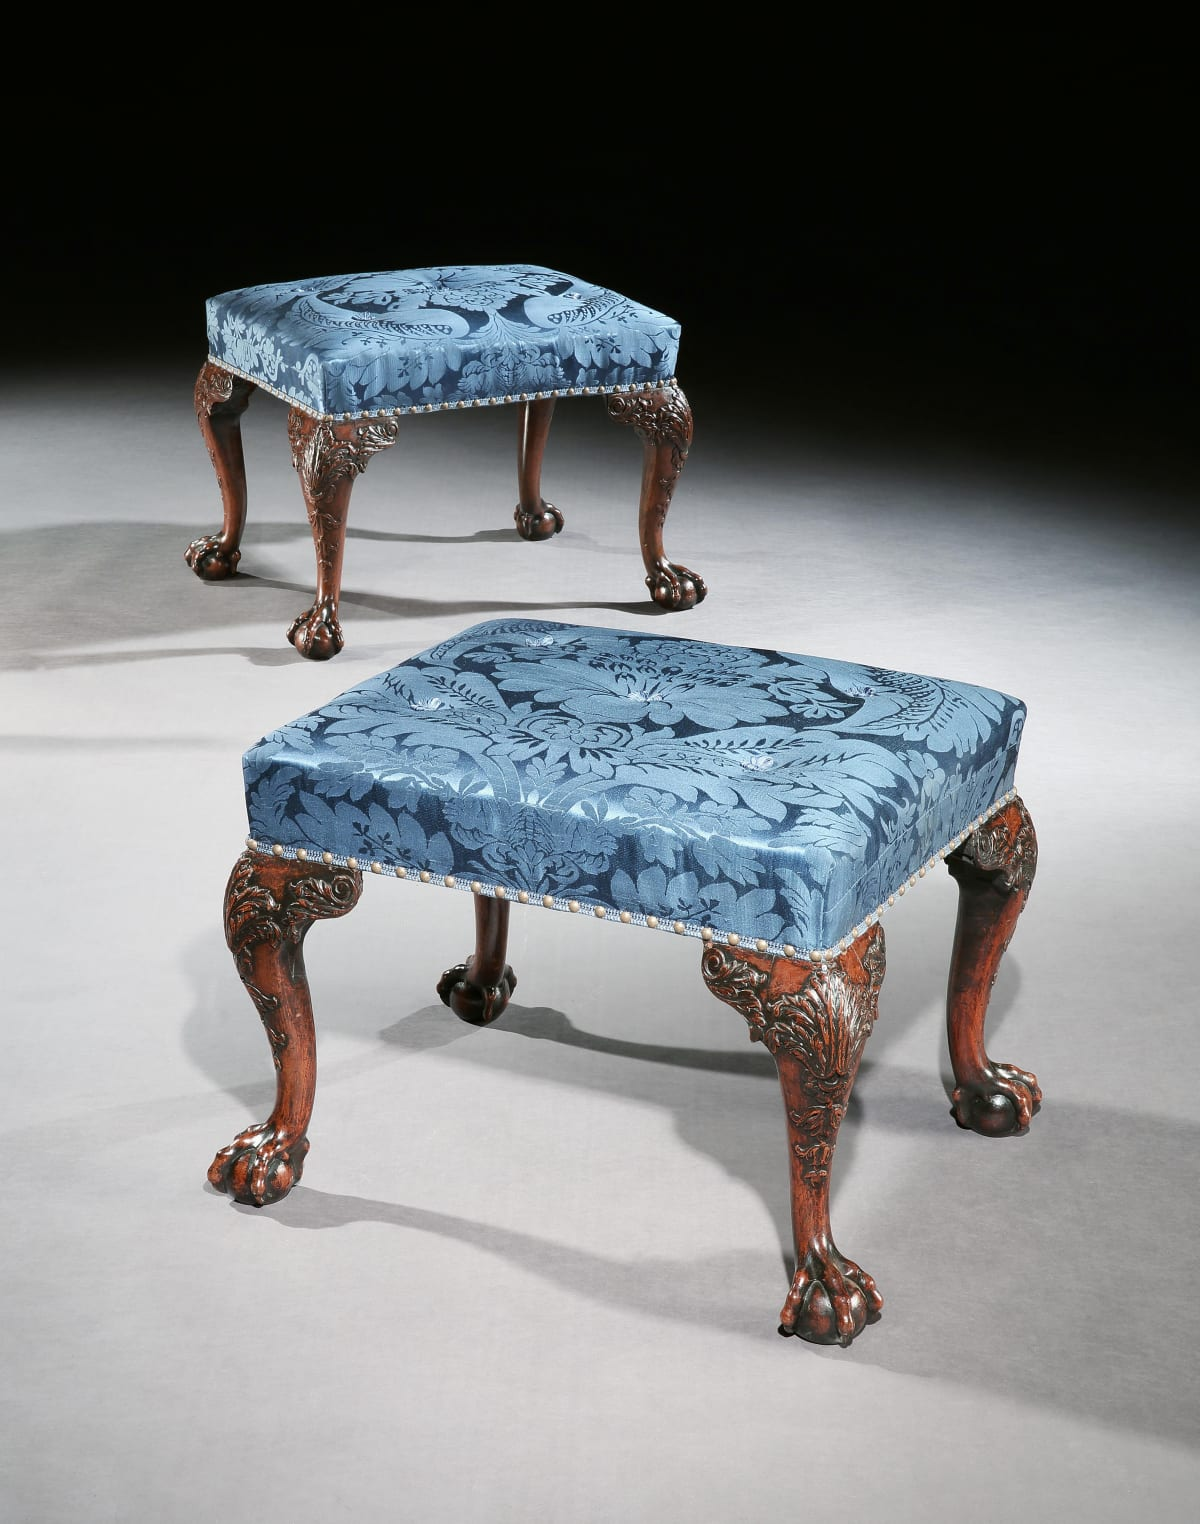 A PAIR OF GEORGE III CHIPPENDALE MAHOGANY STOOLS, English circa 1770